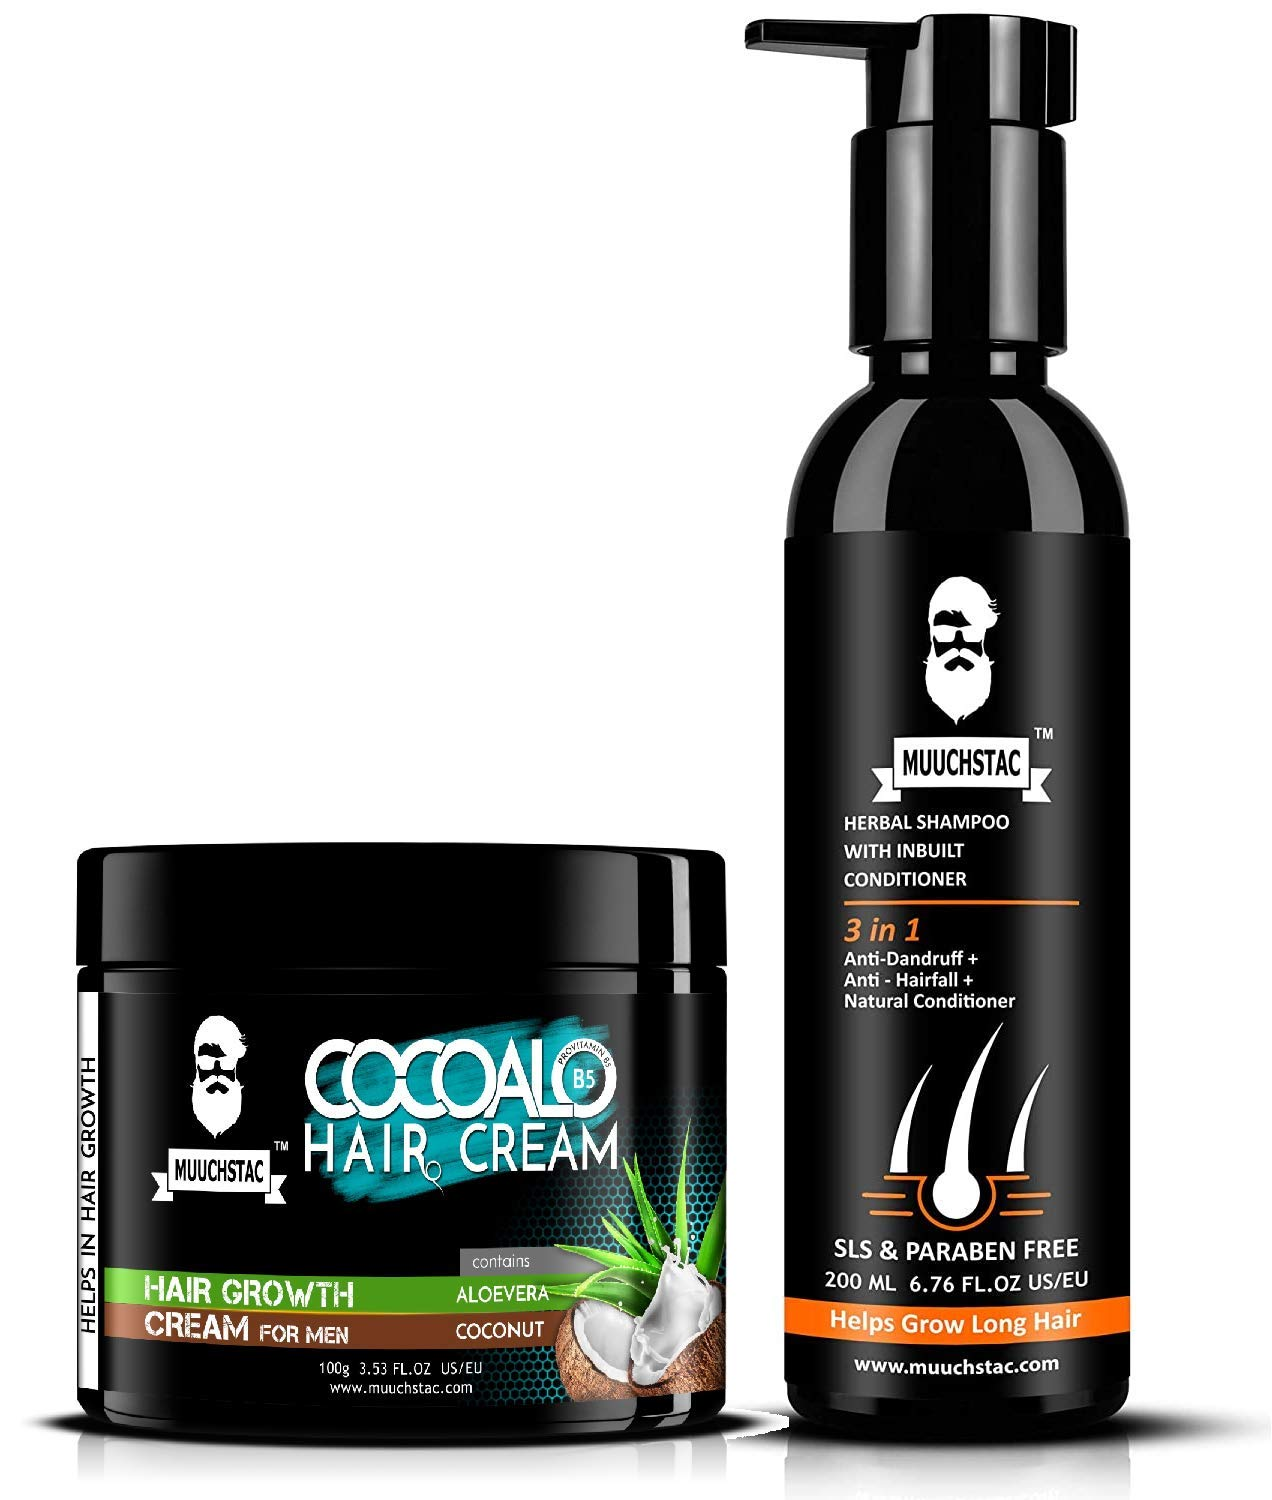 Muuchstac Cocoalo Hair Cream and Herbal Shampoo with Inbuilt Conditioner - 300 ml - Hair Care Set - Pack of 2